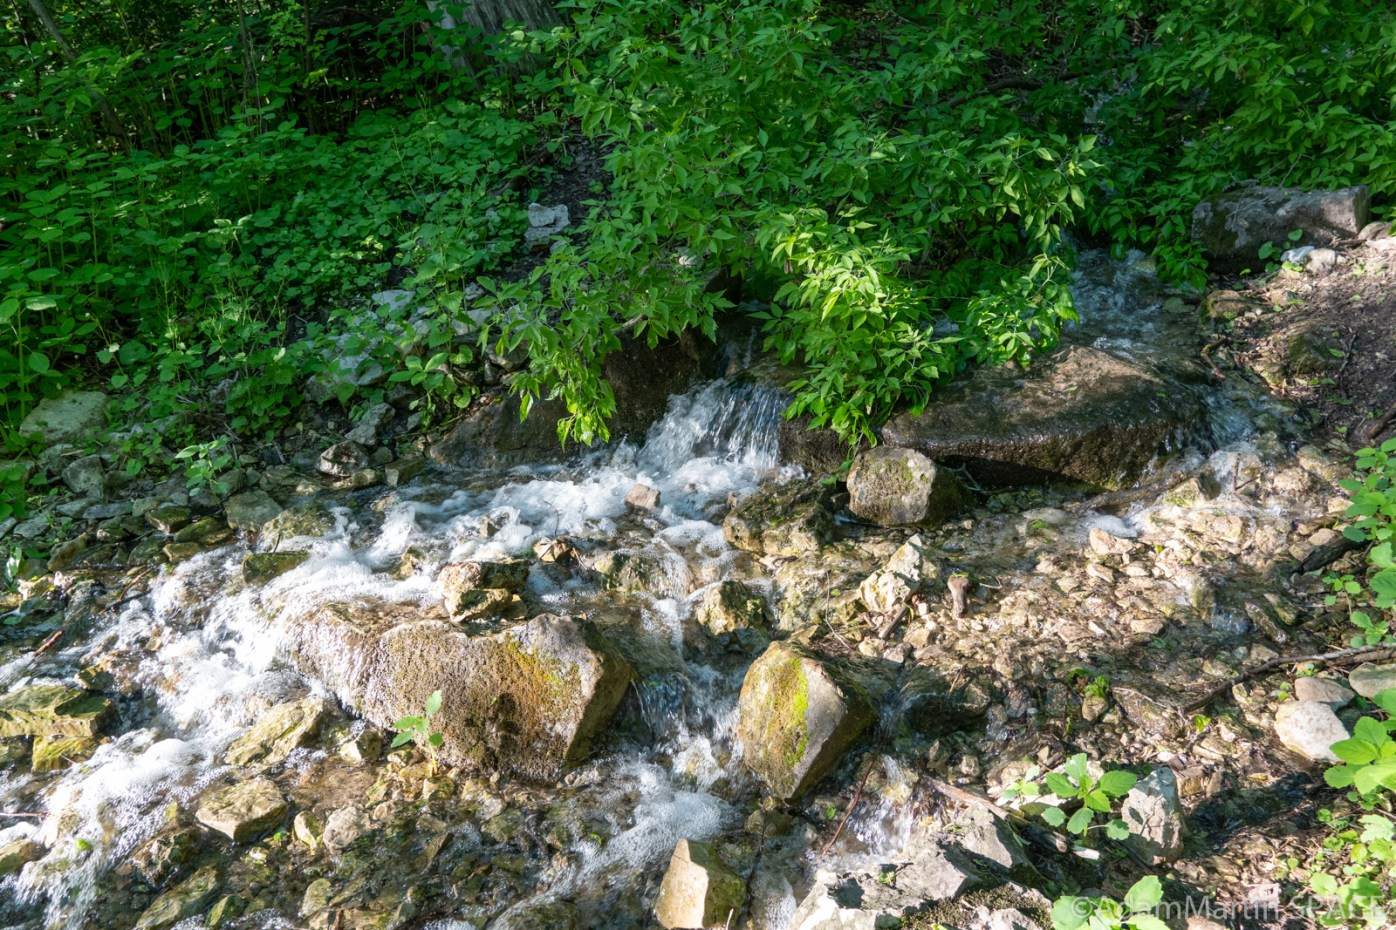 High Cliff State Park - Small riffles at bottom of Lime Kiln Falls (Upper)